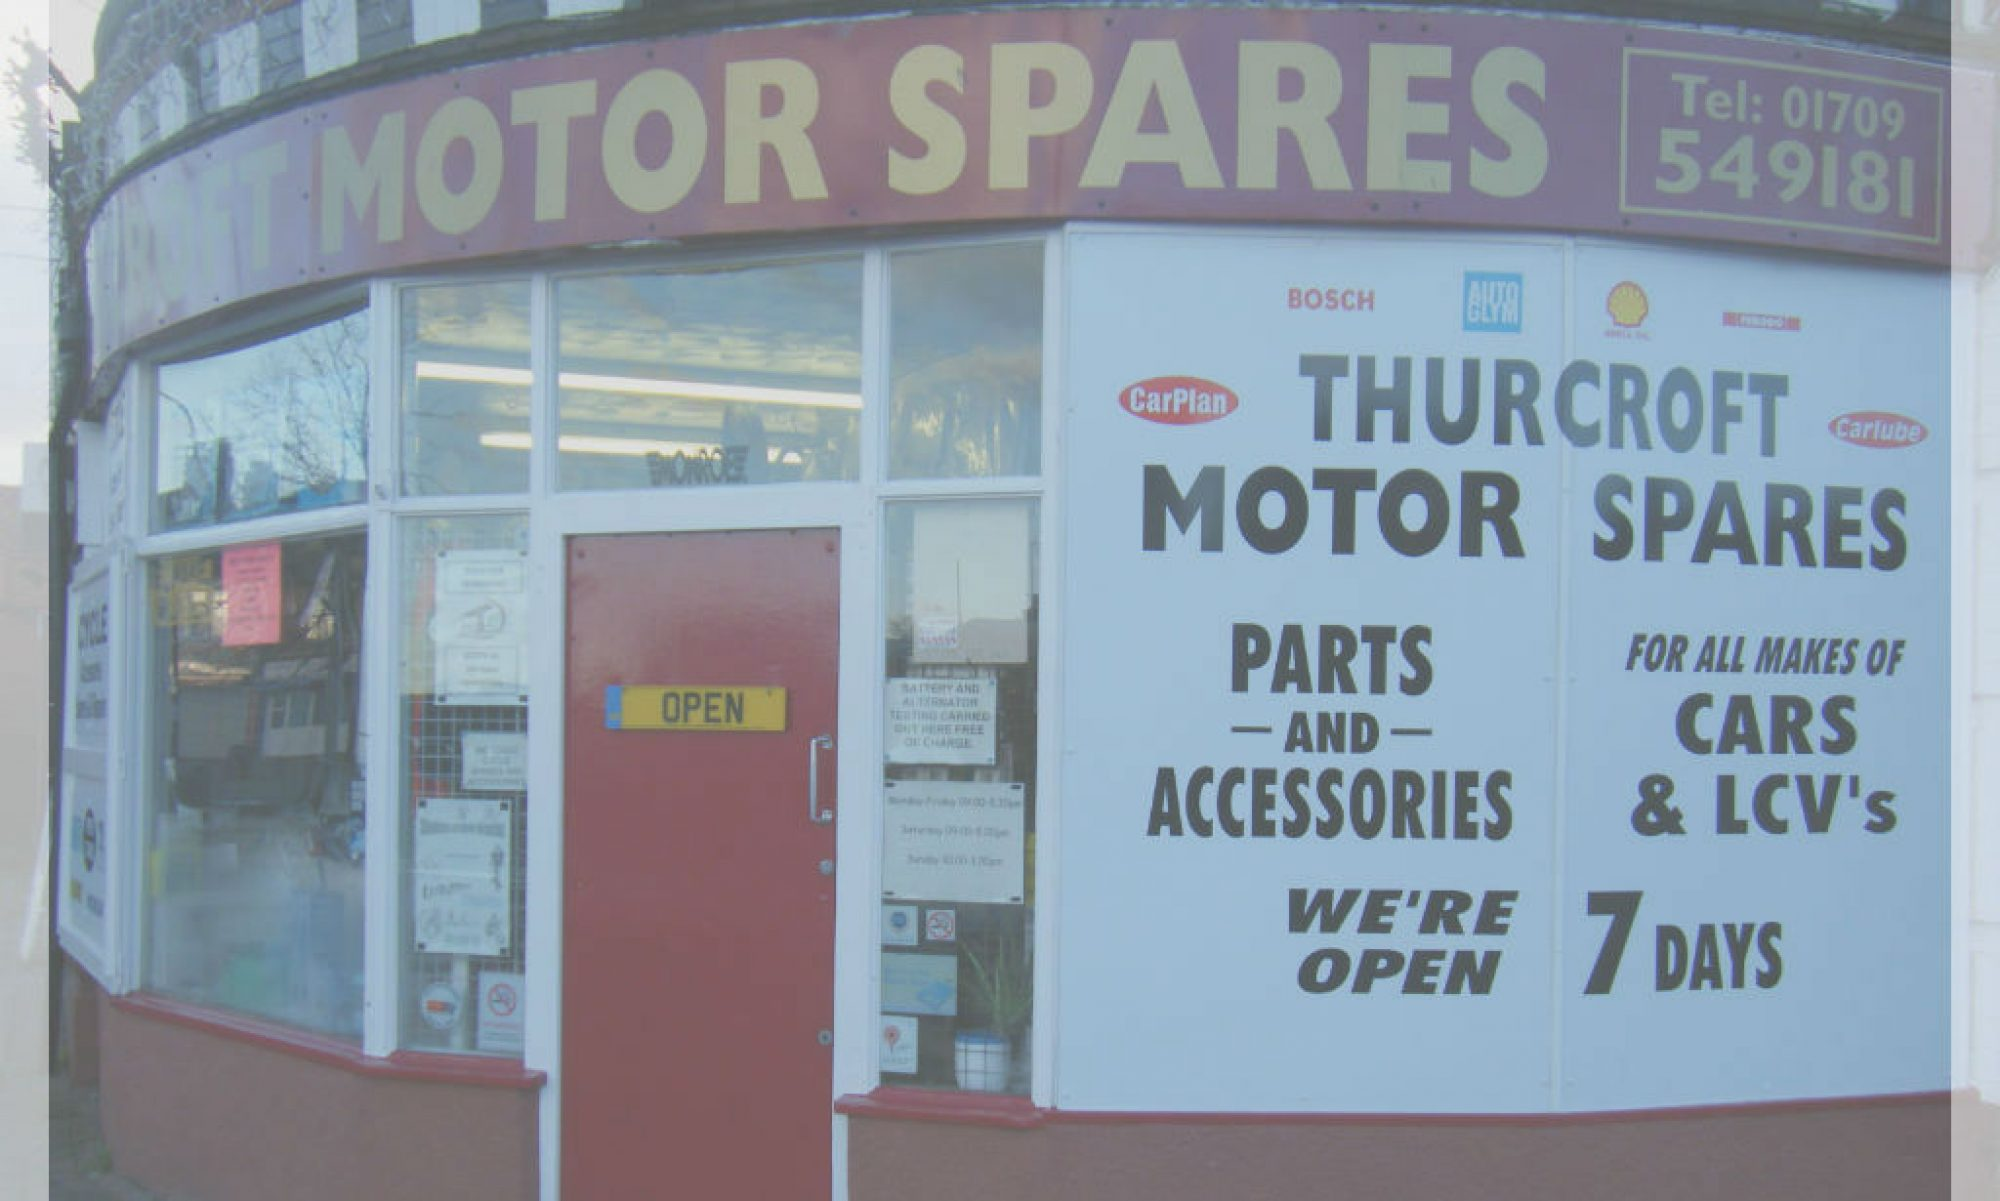 Thurcroft Motor Spares